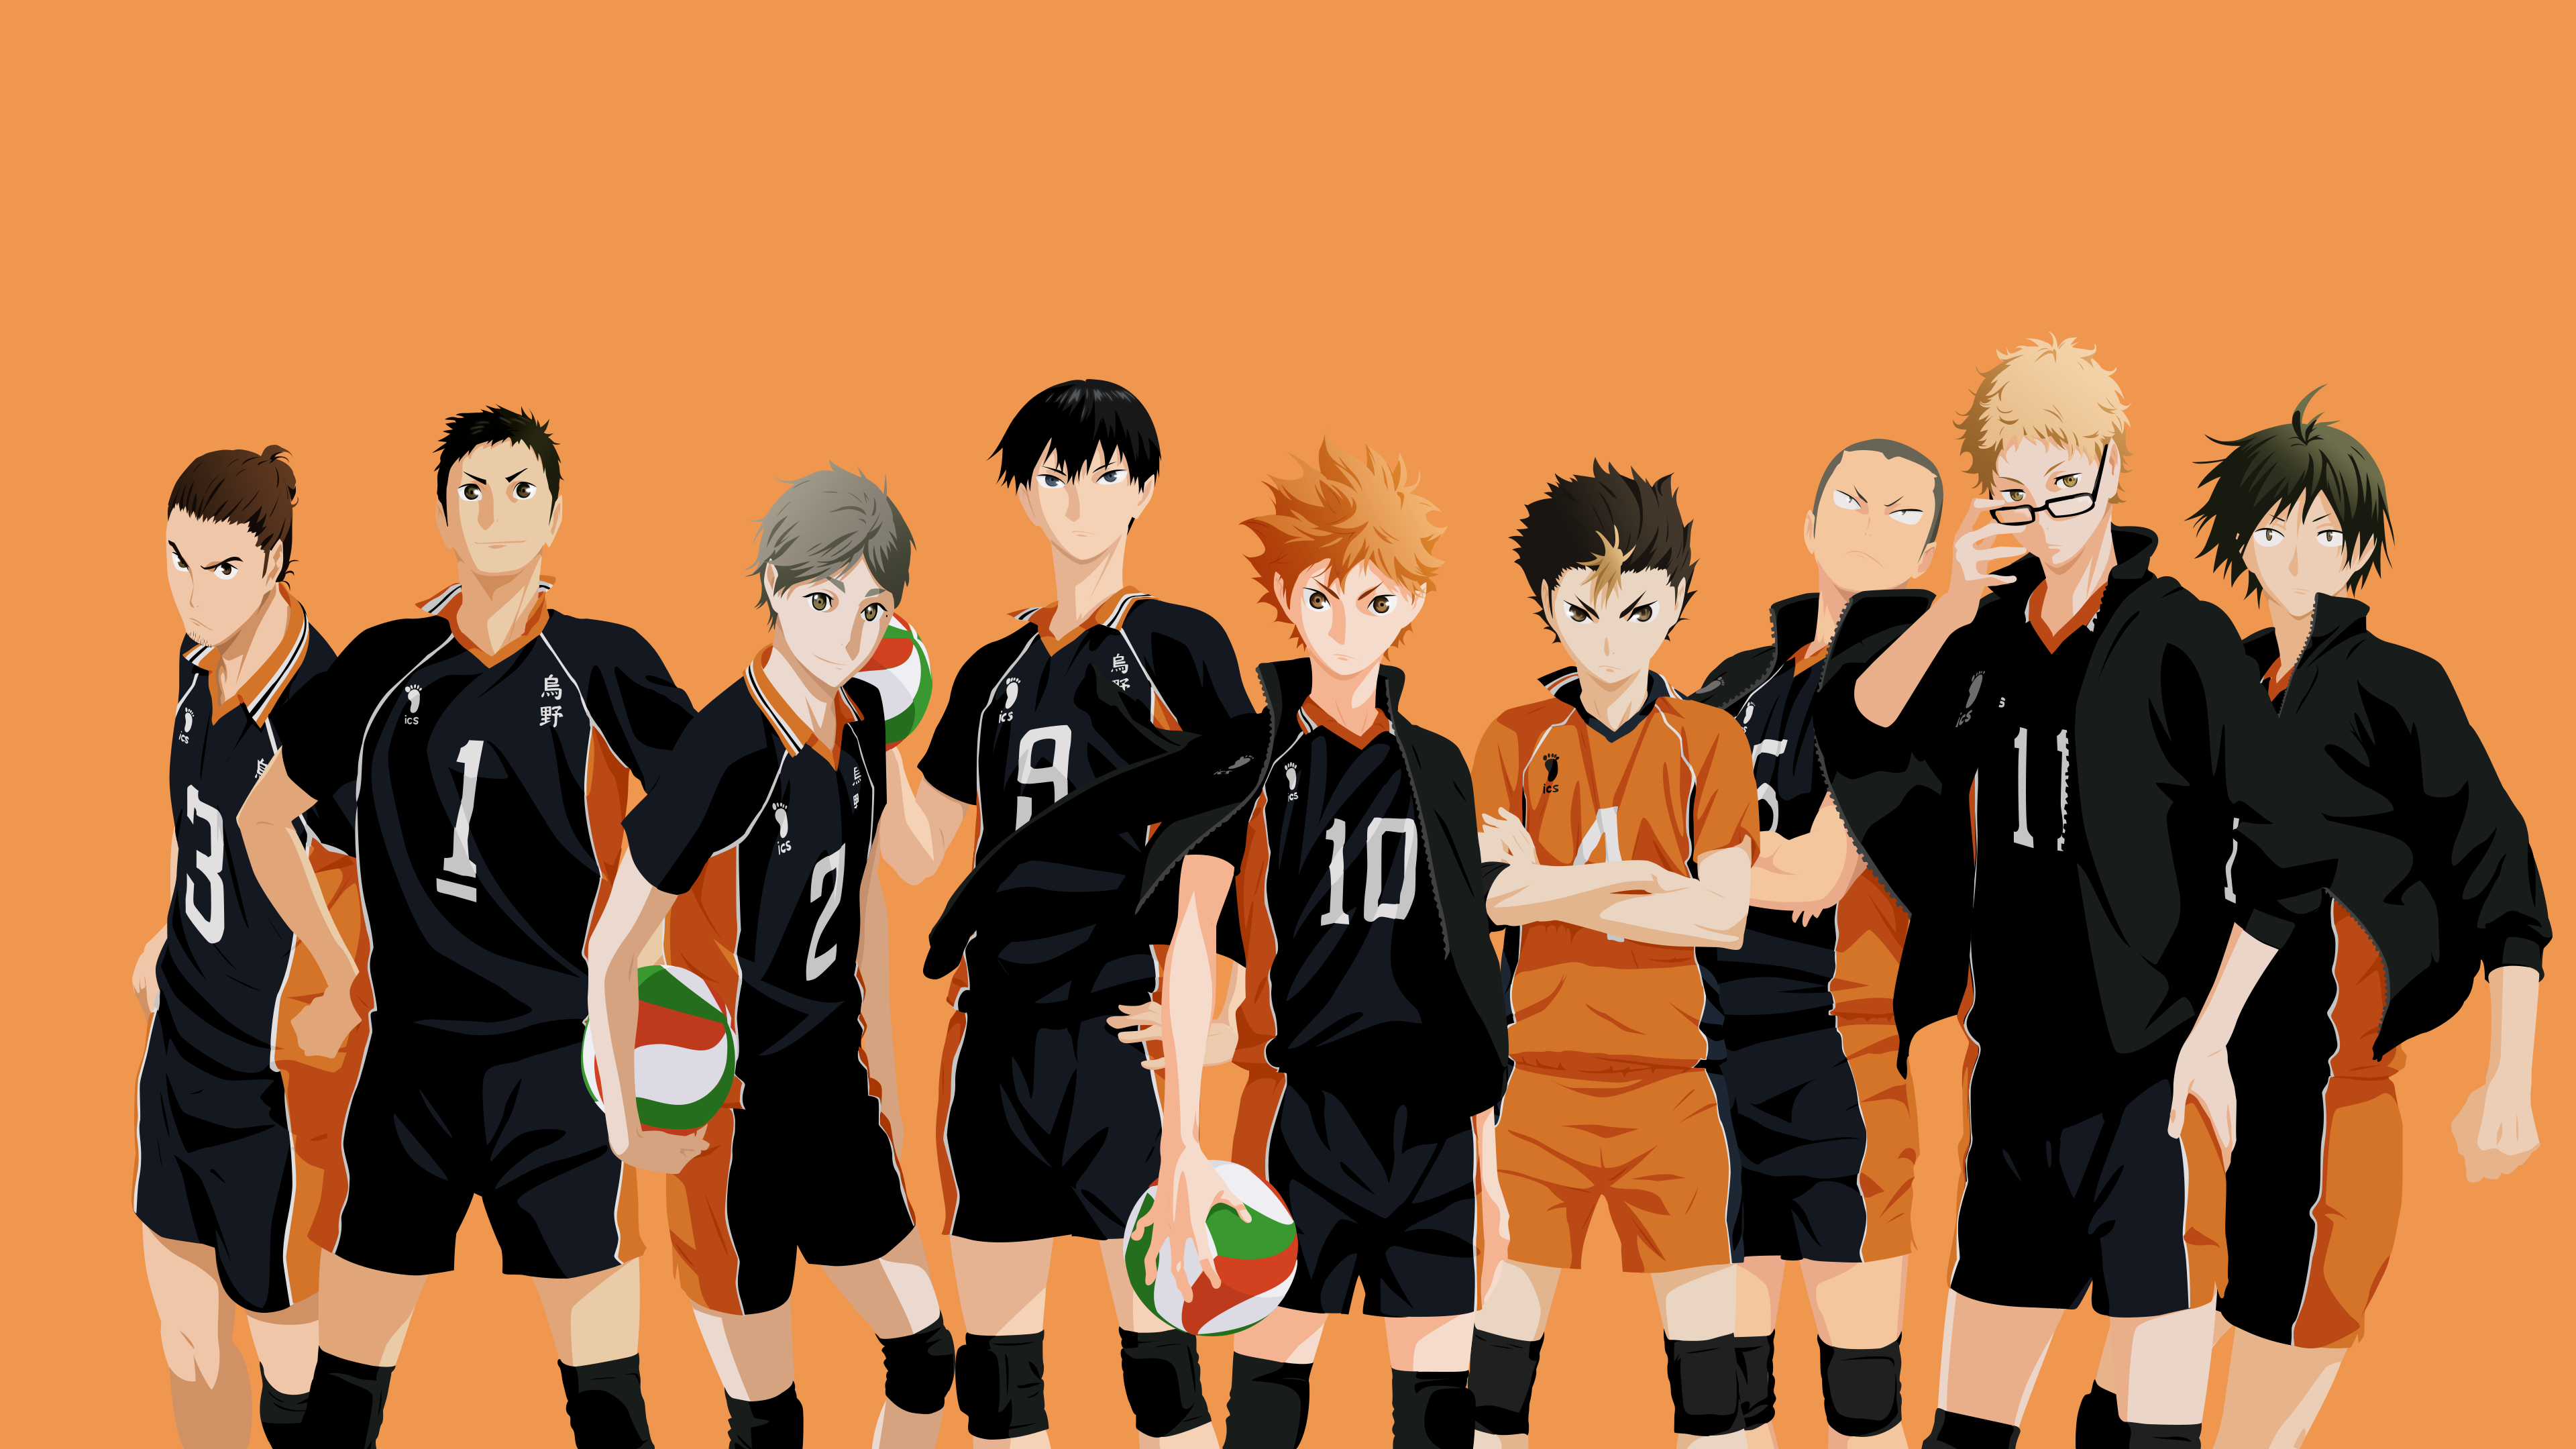 Karasuno Volleyball Team Desktop Wallpaper In 2020 Haikyuu Wallpaper Hd Anime Wallpapers Anime Wallpaper 1920x1080